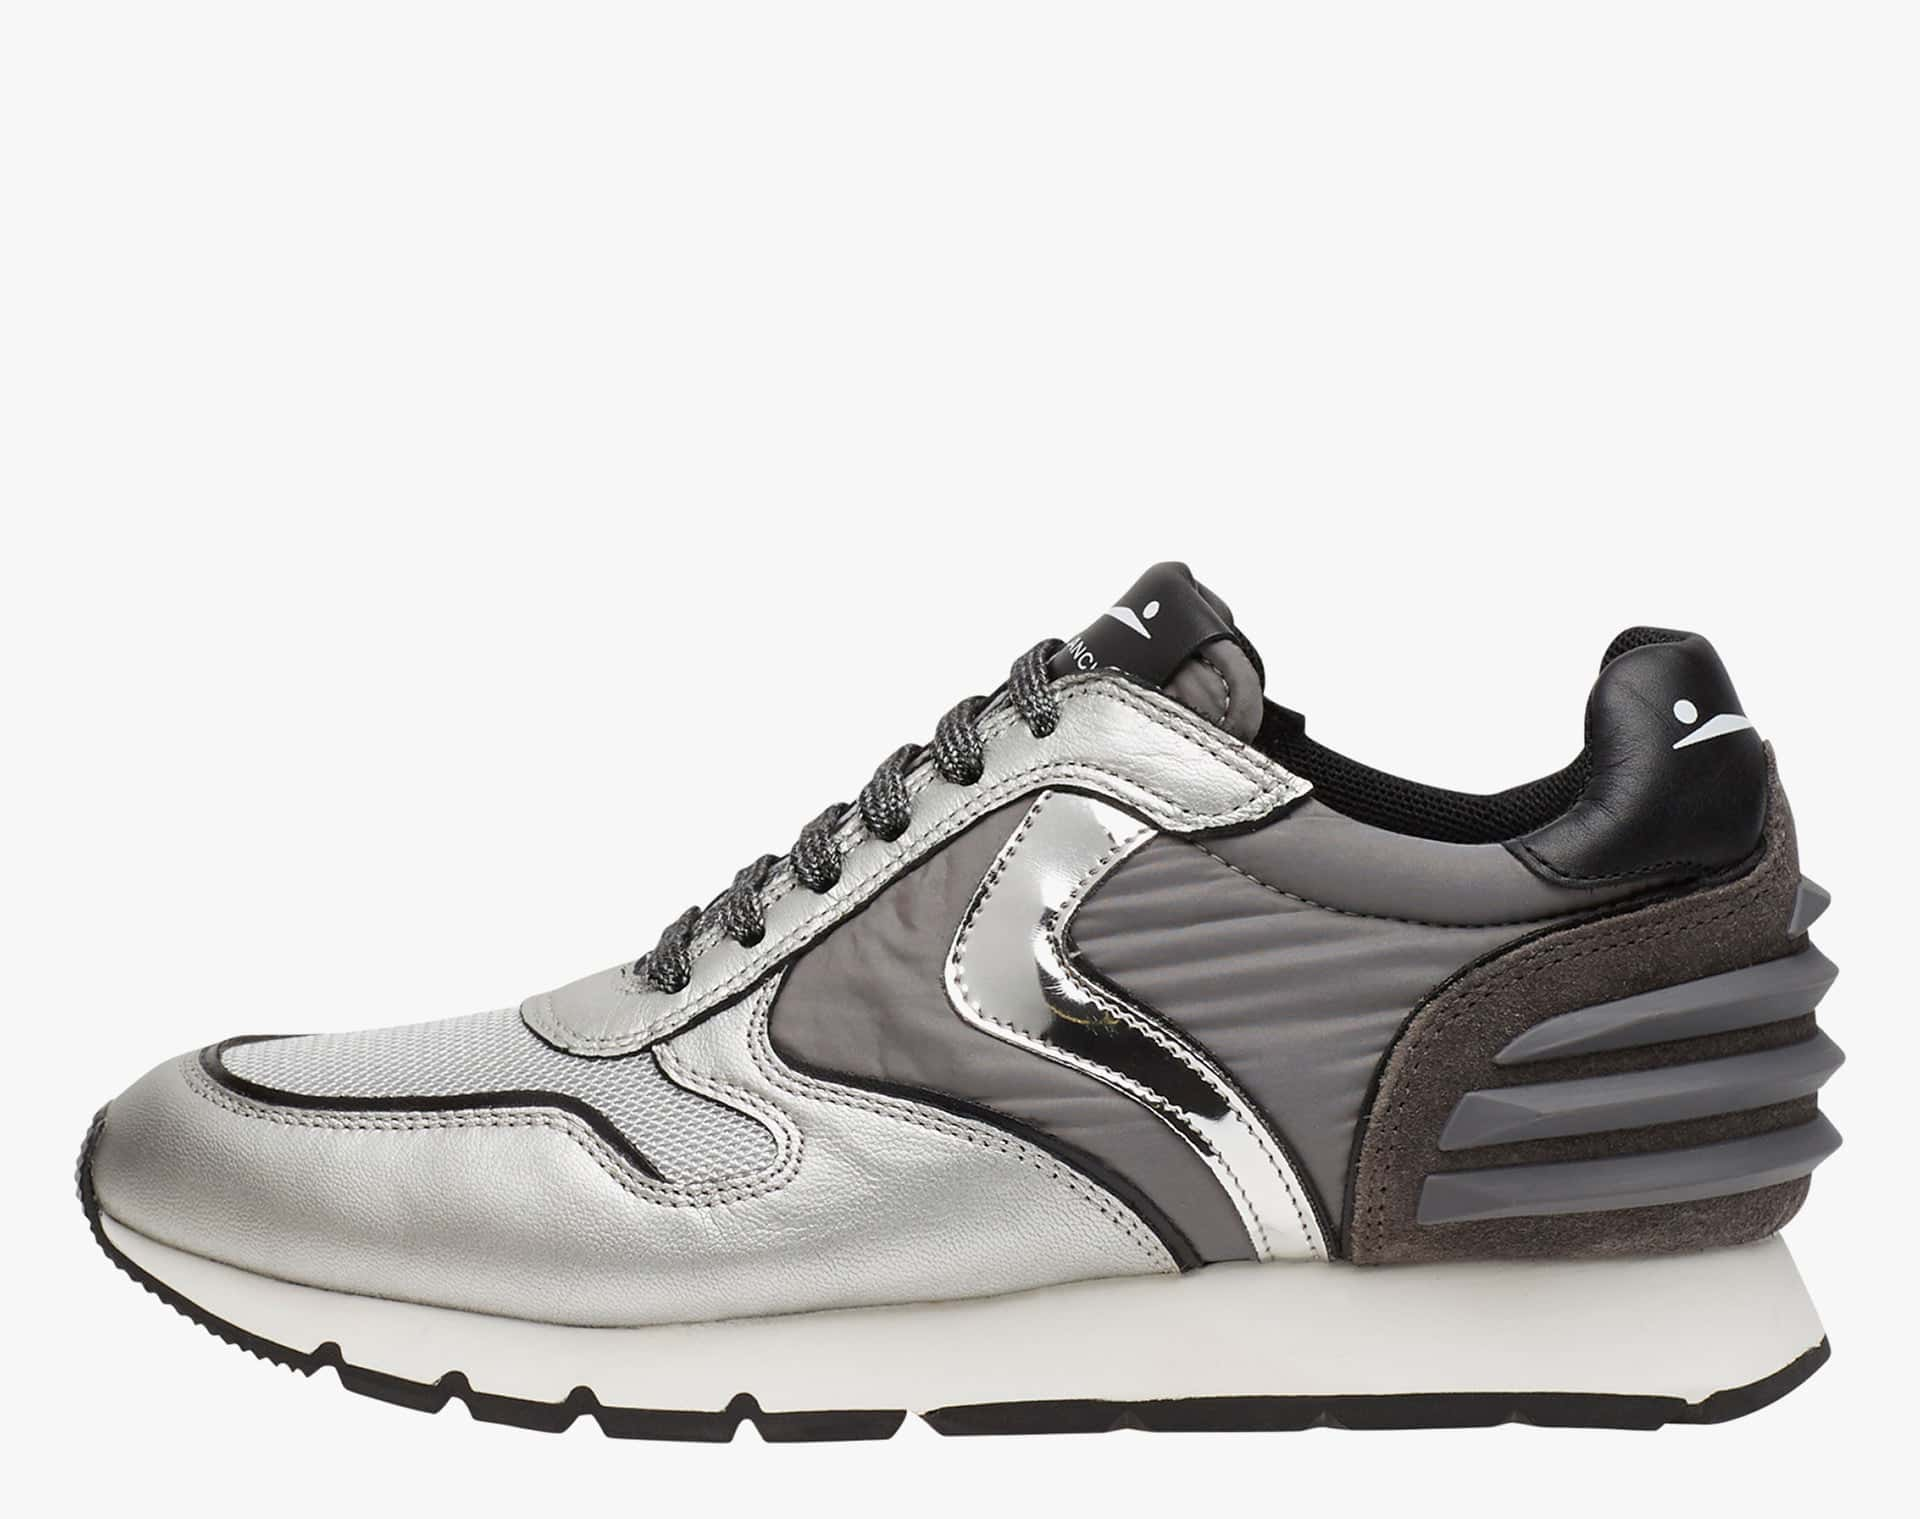 JULIA POWER - Sneakers in leather and nylon - SILVER-CHARCOAL GREY